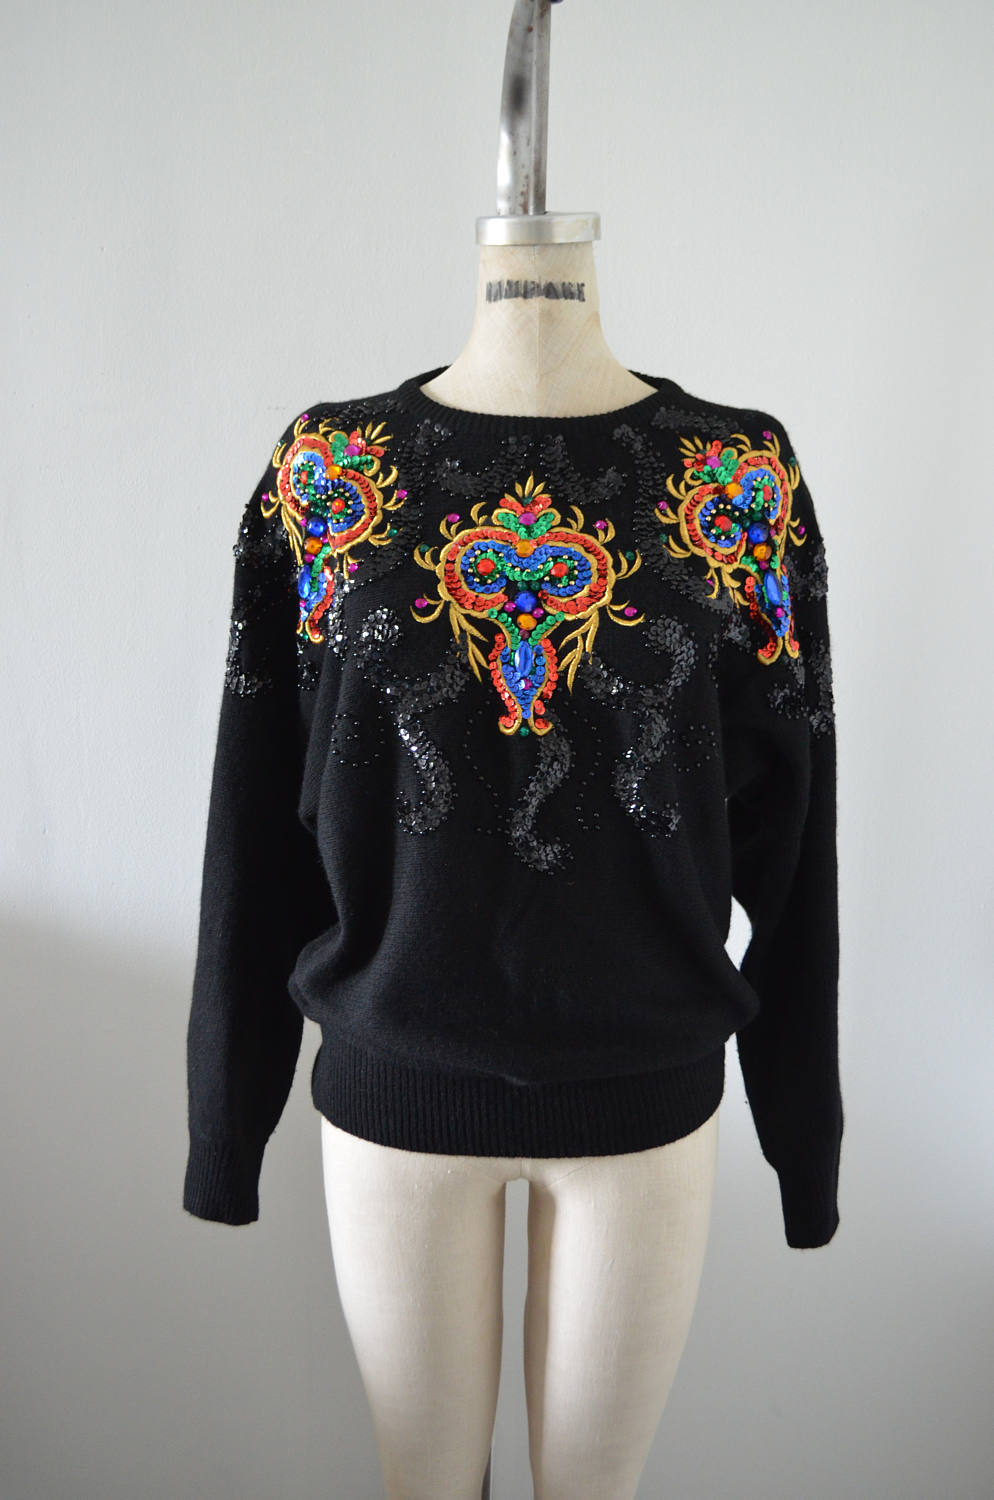 Jewelry Sequined Sweatshirt Blouse Sparkling Embroidery Beaded Black/Colorful Sweatershirt